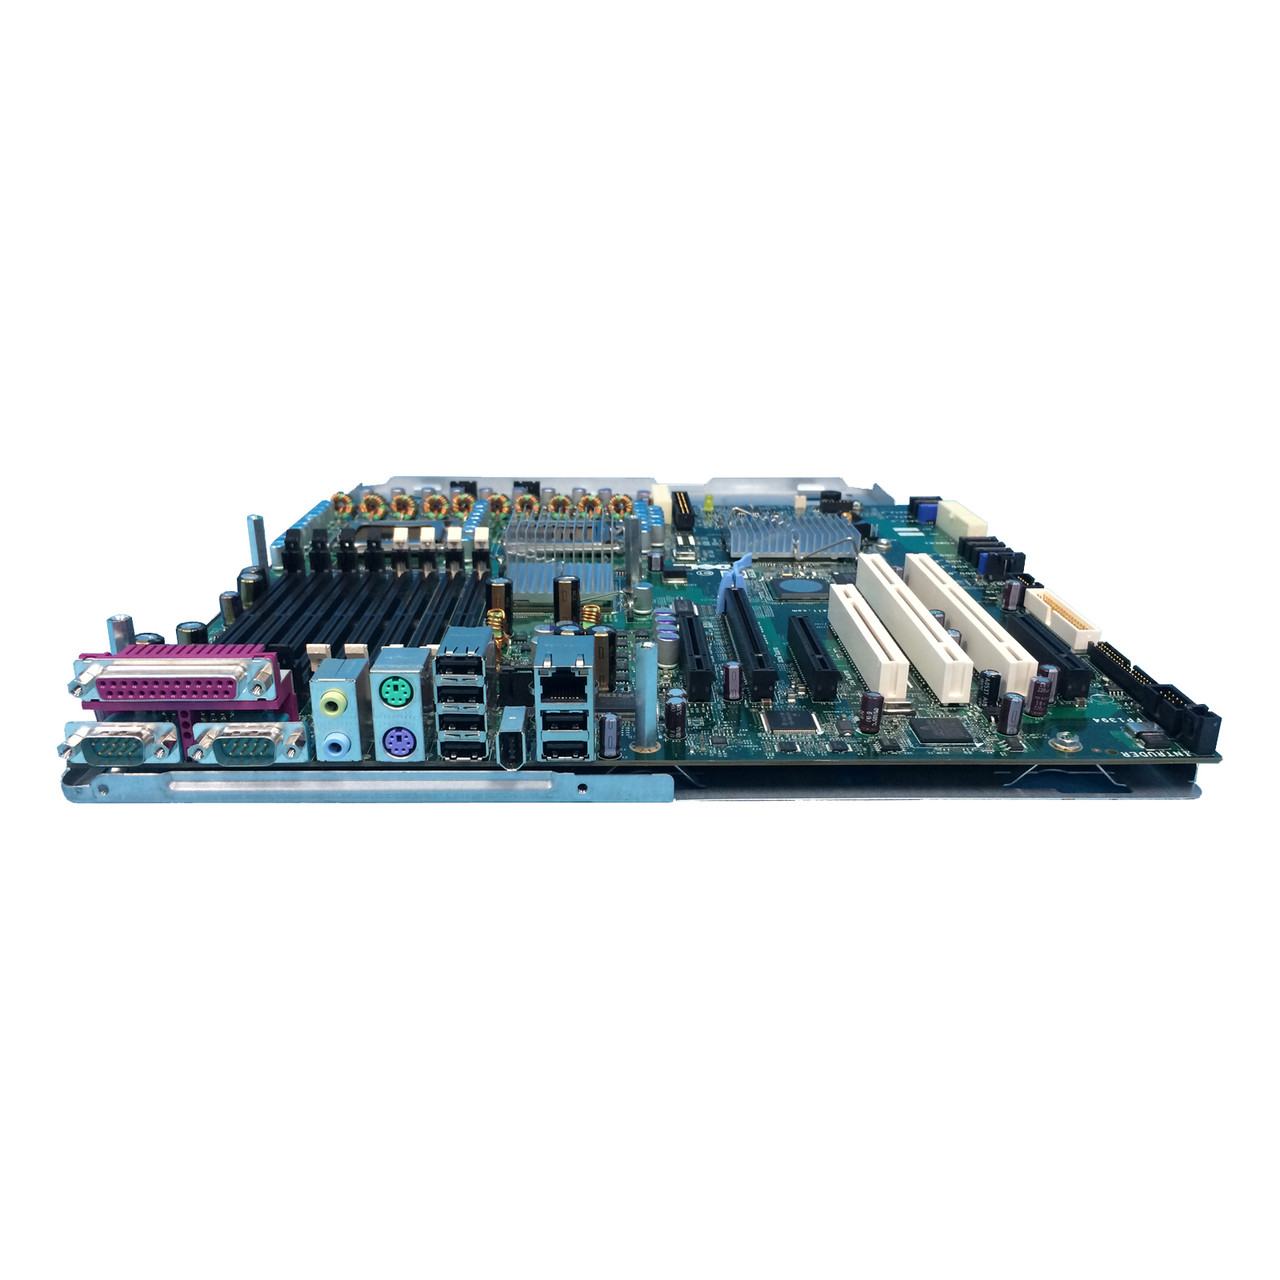 Dell Motherboard Diagram Quotes - Wiring Diagram Filter